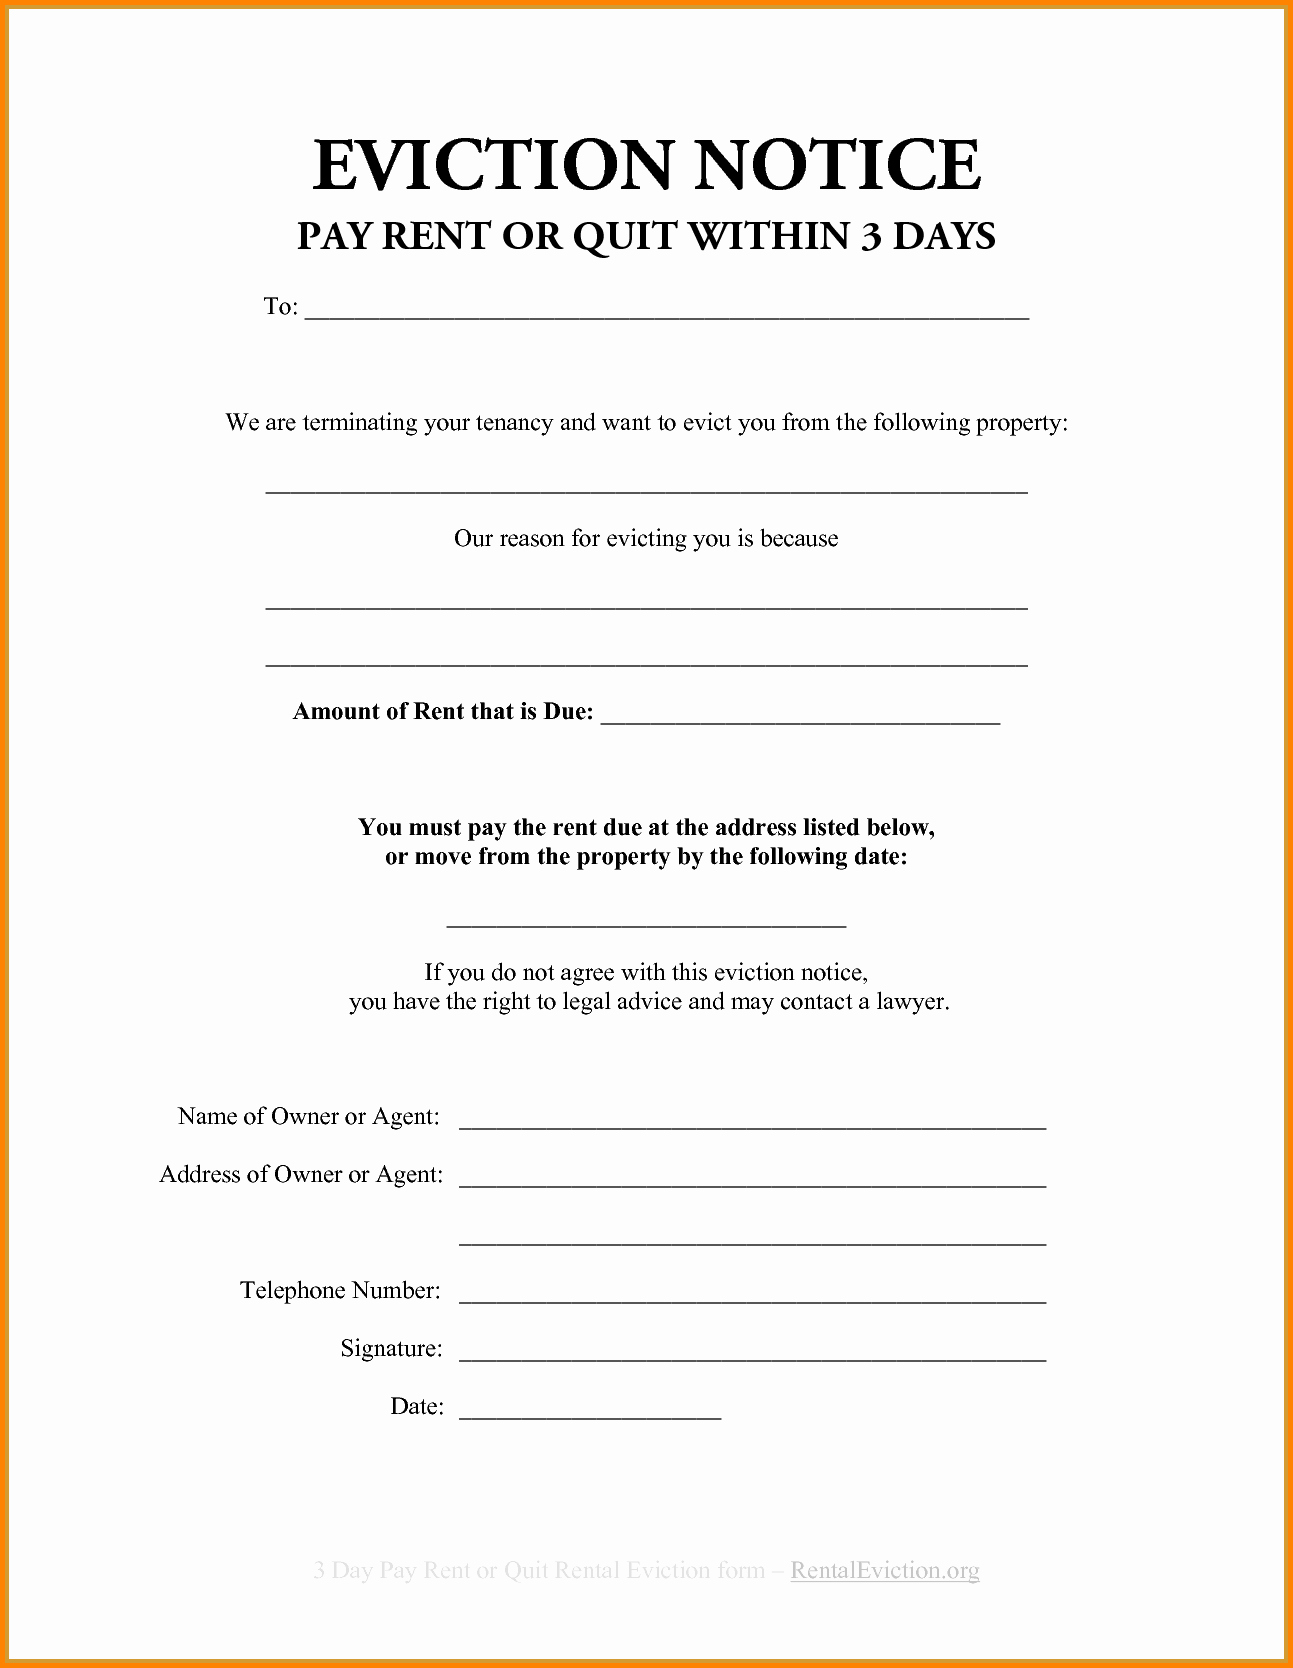 Eviction Notice Template Texas Lovely Eviction Notice Template Example Mughals